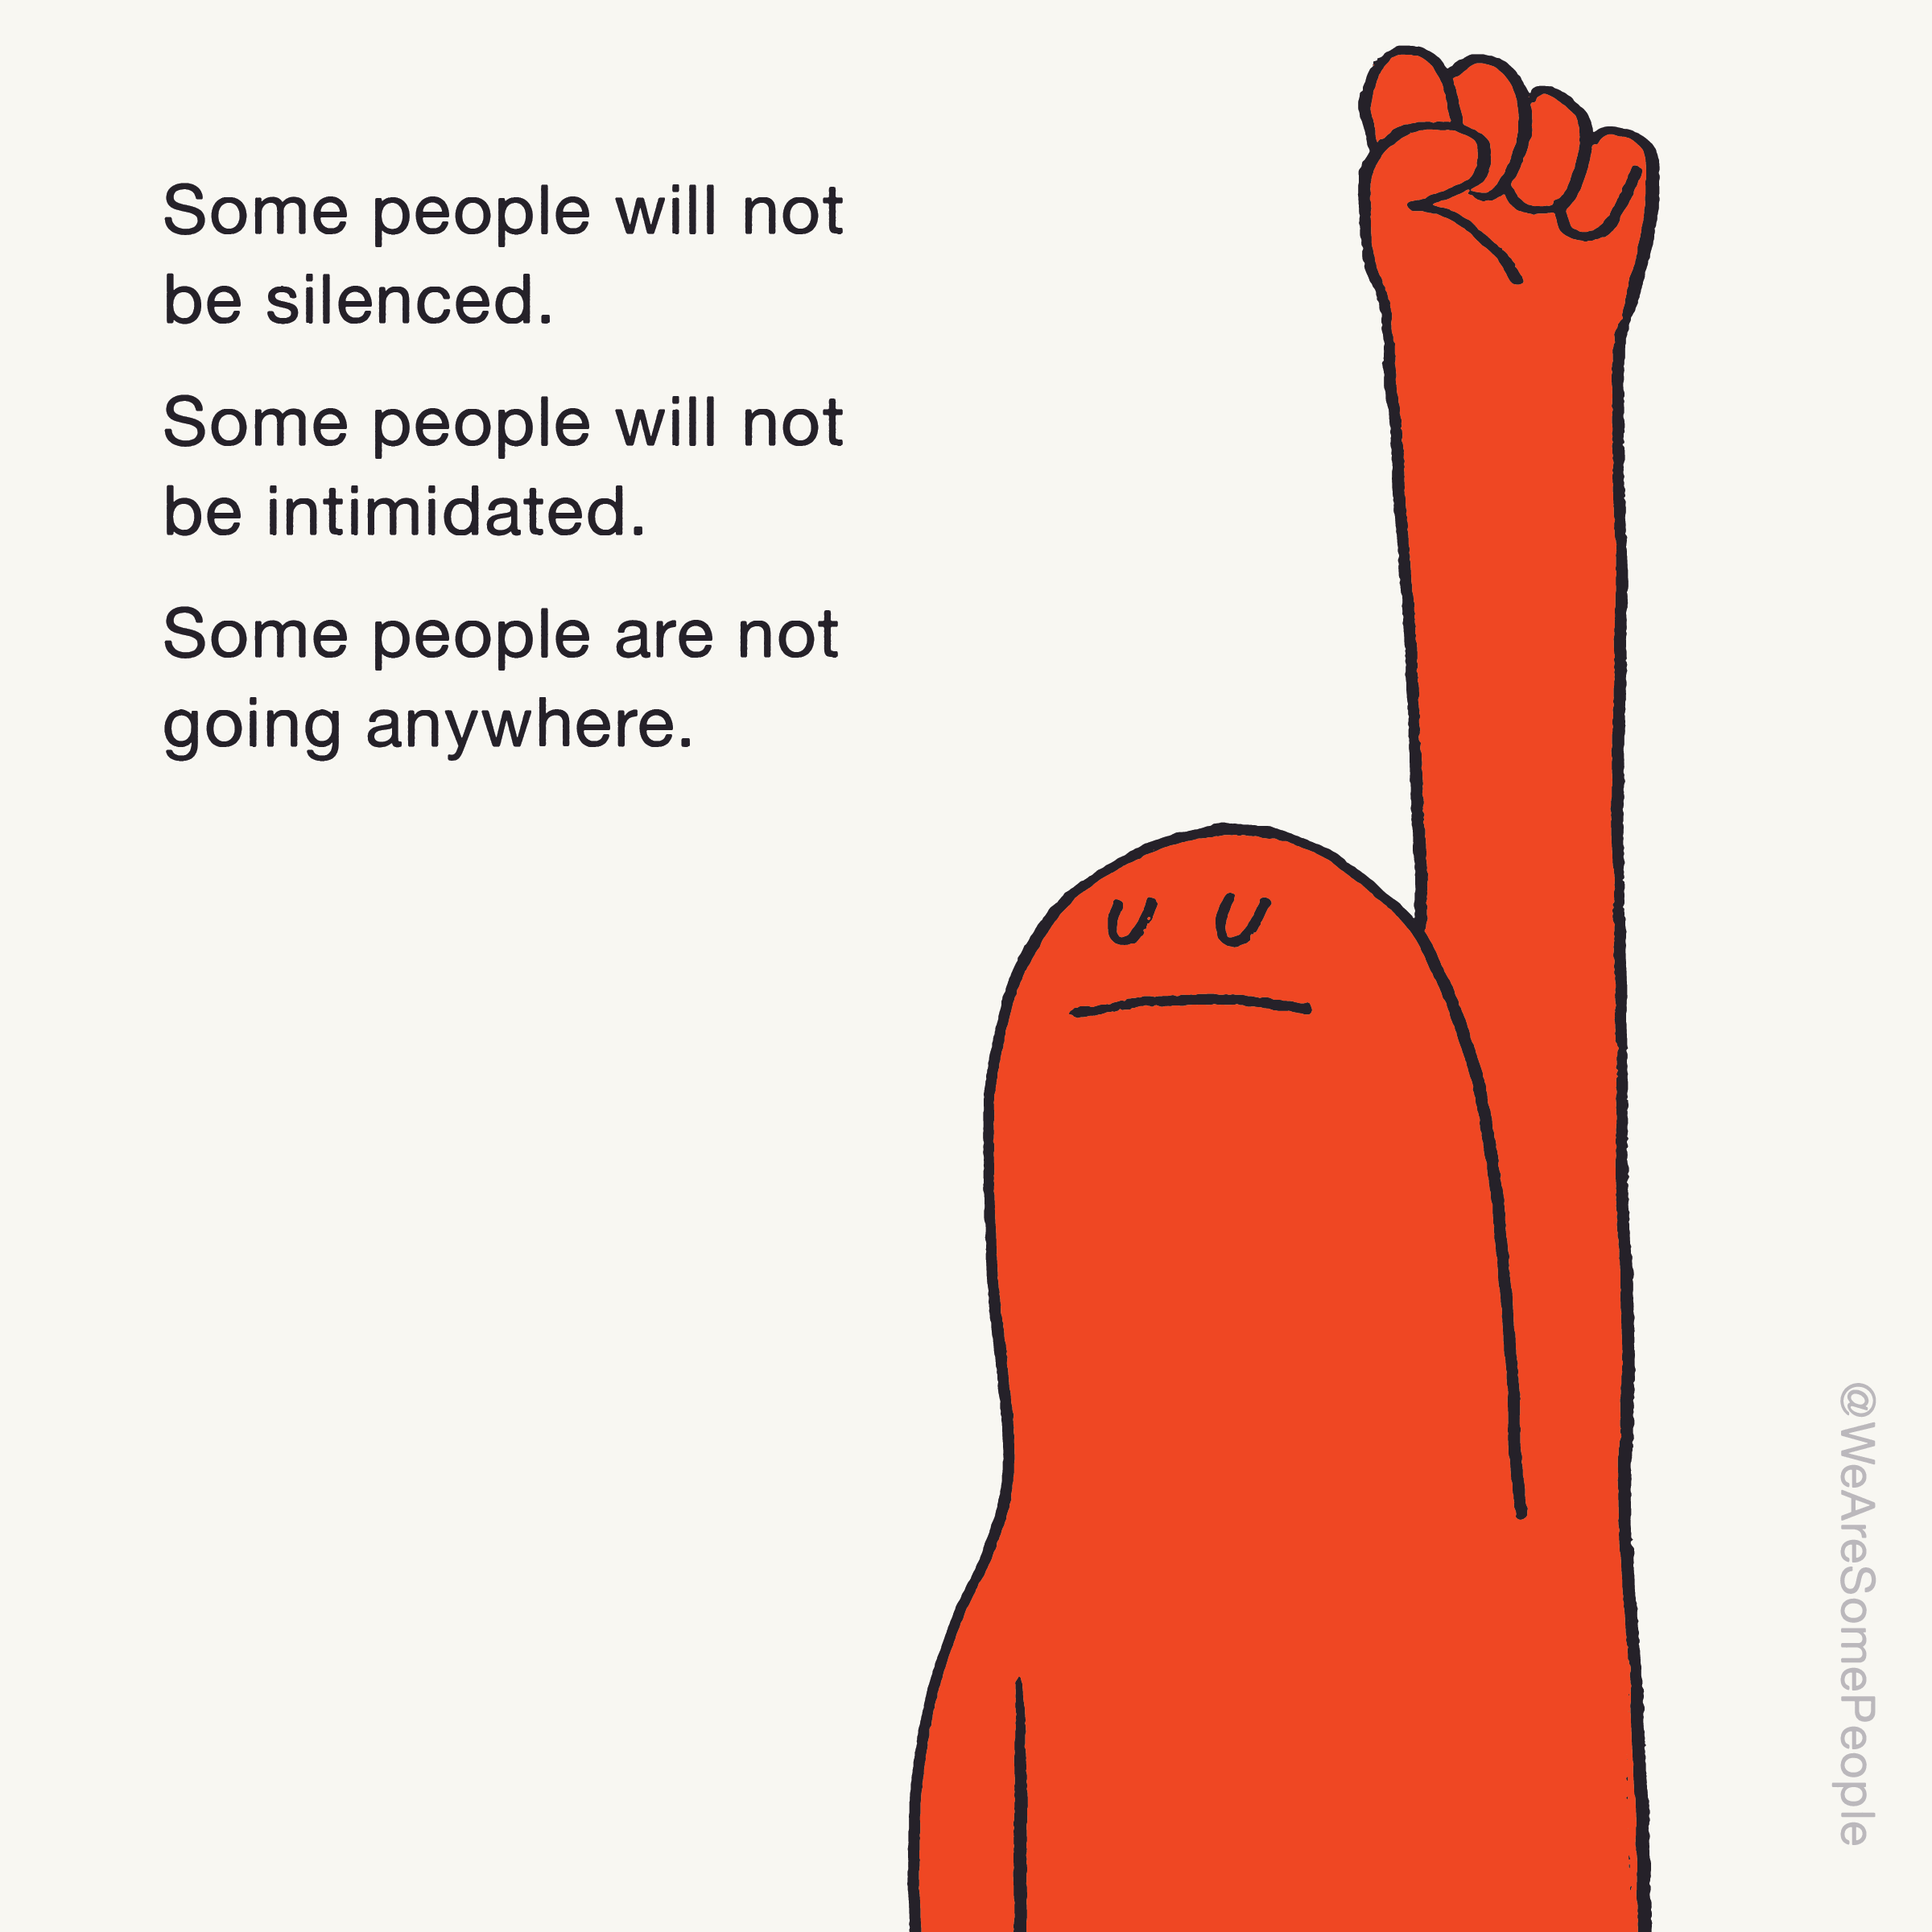 We_Are_Some_People-01-12-CDR.png